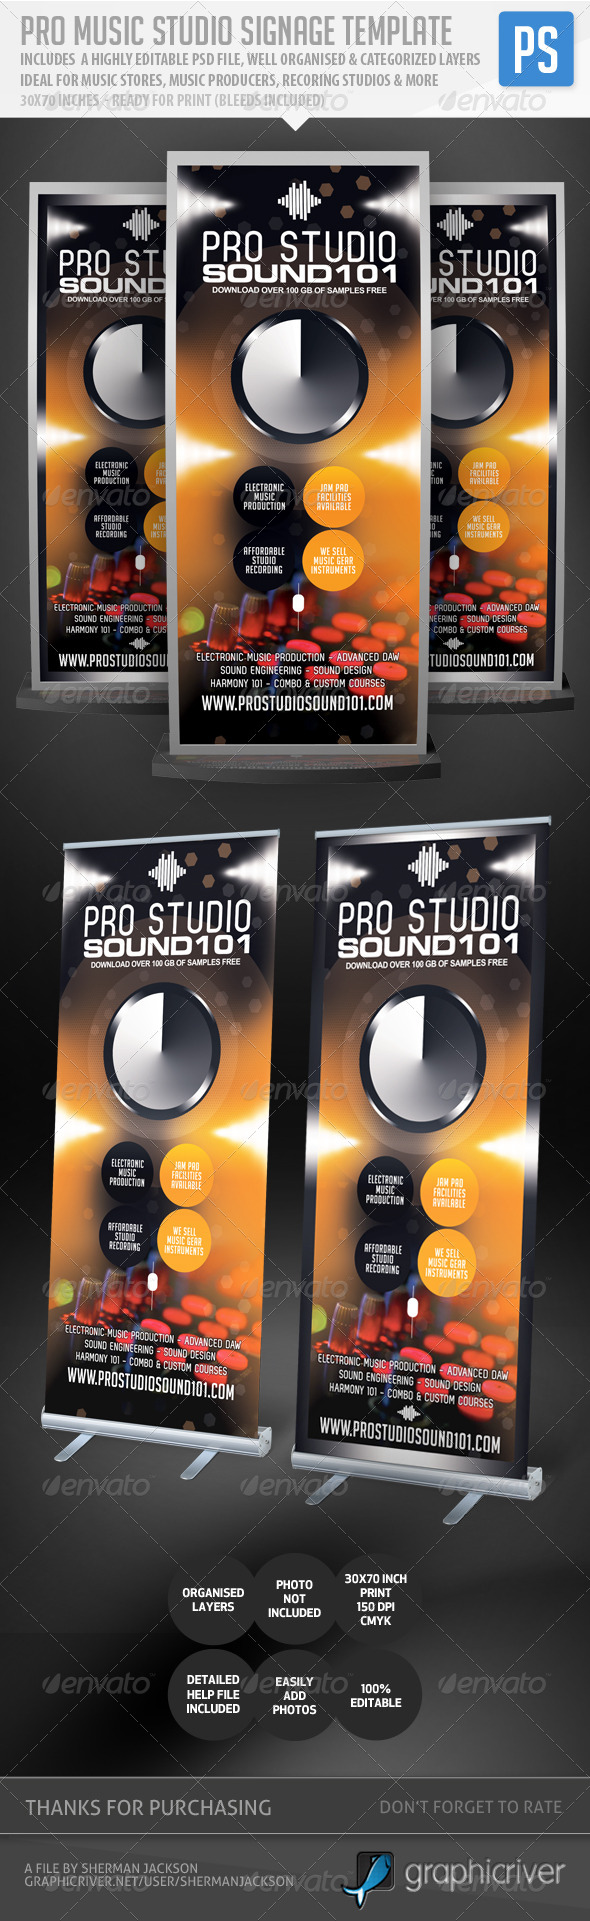 Pro Music Studio Music Expo Signage Template - Signage Print Templates